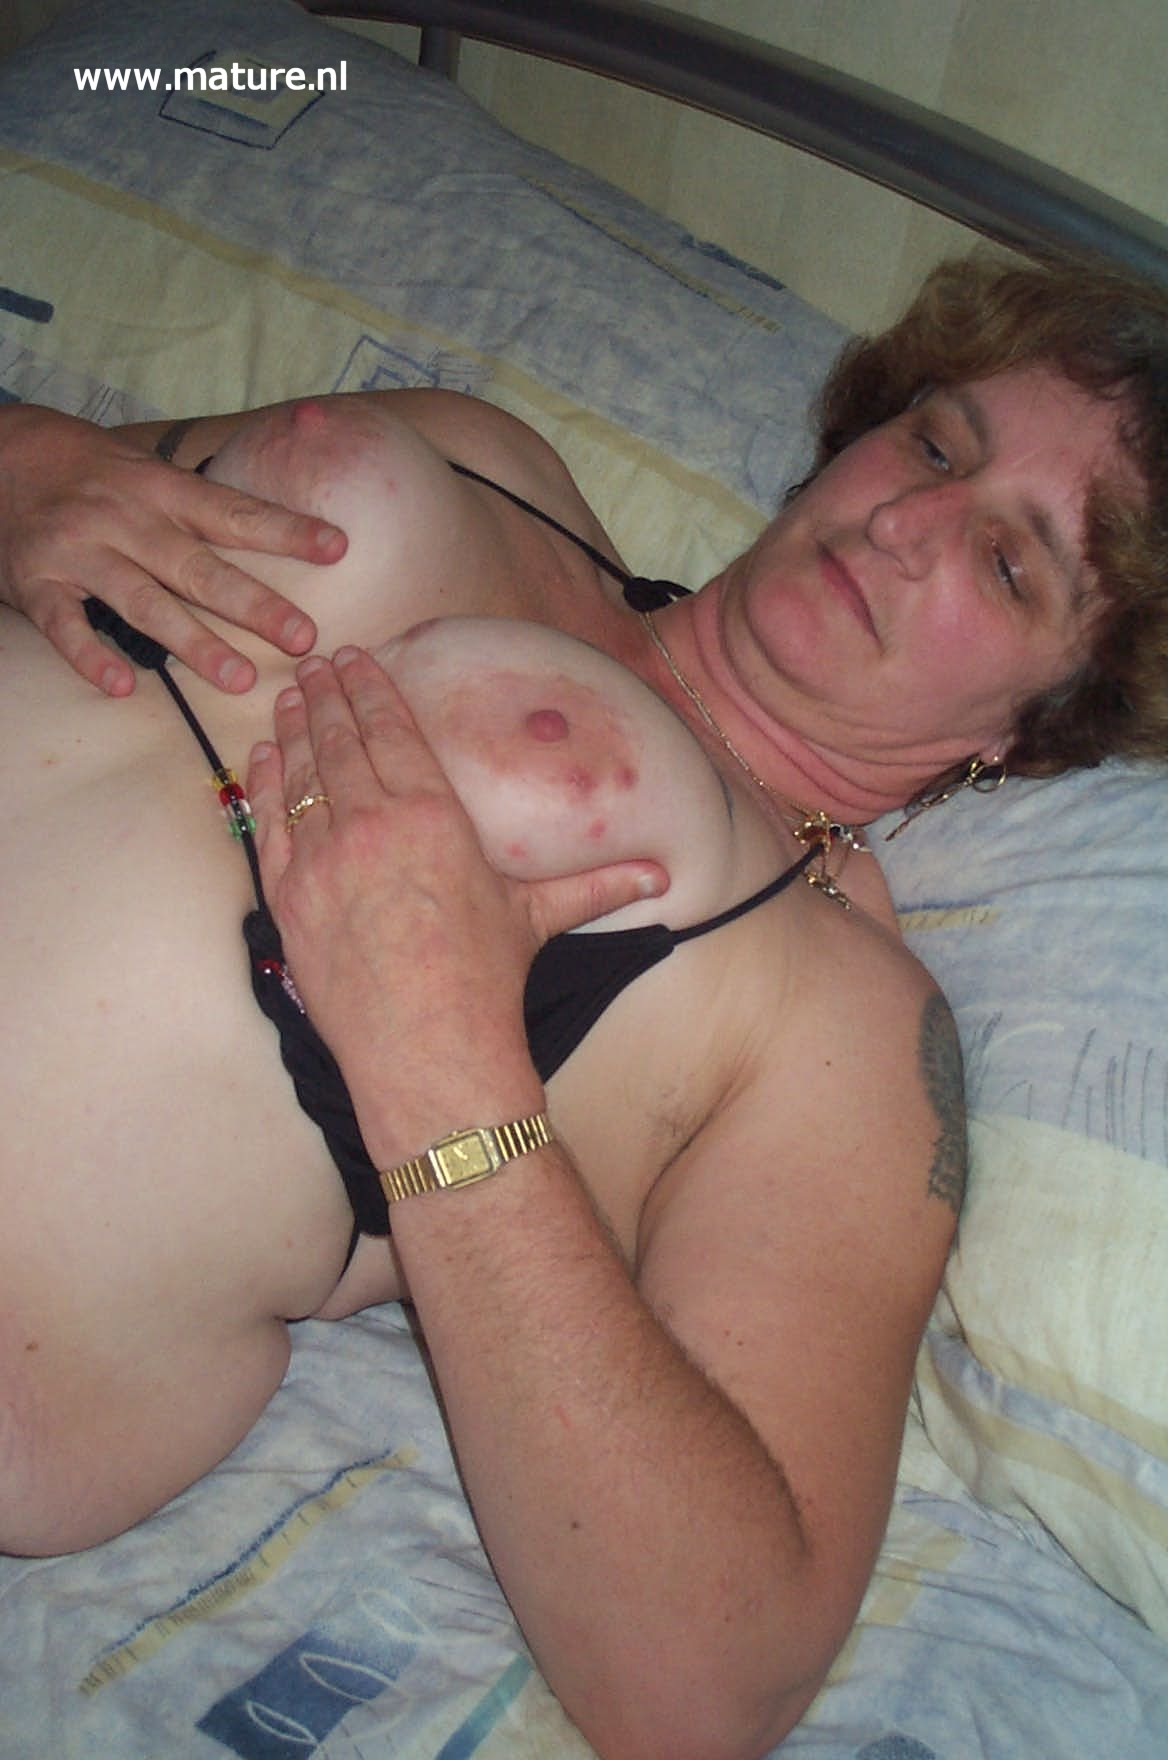 The one Mature trailer trash slut